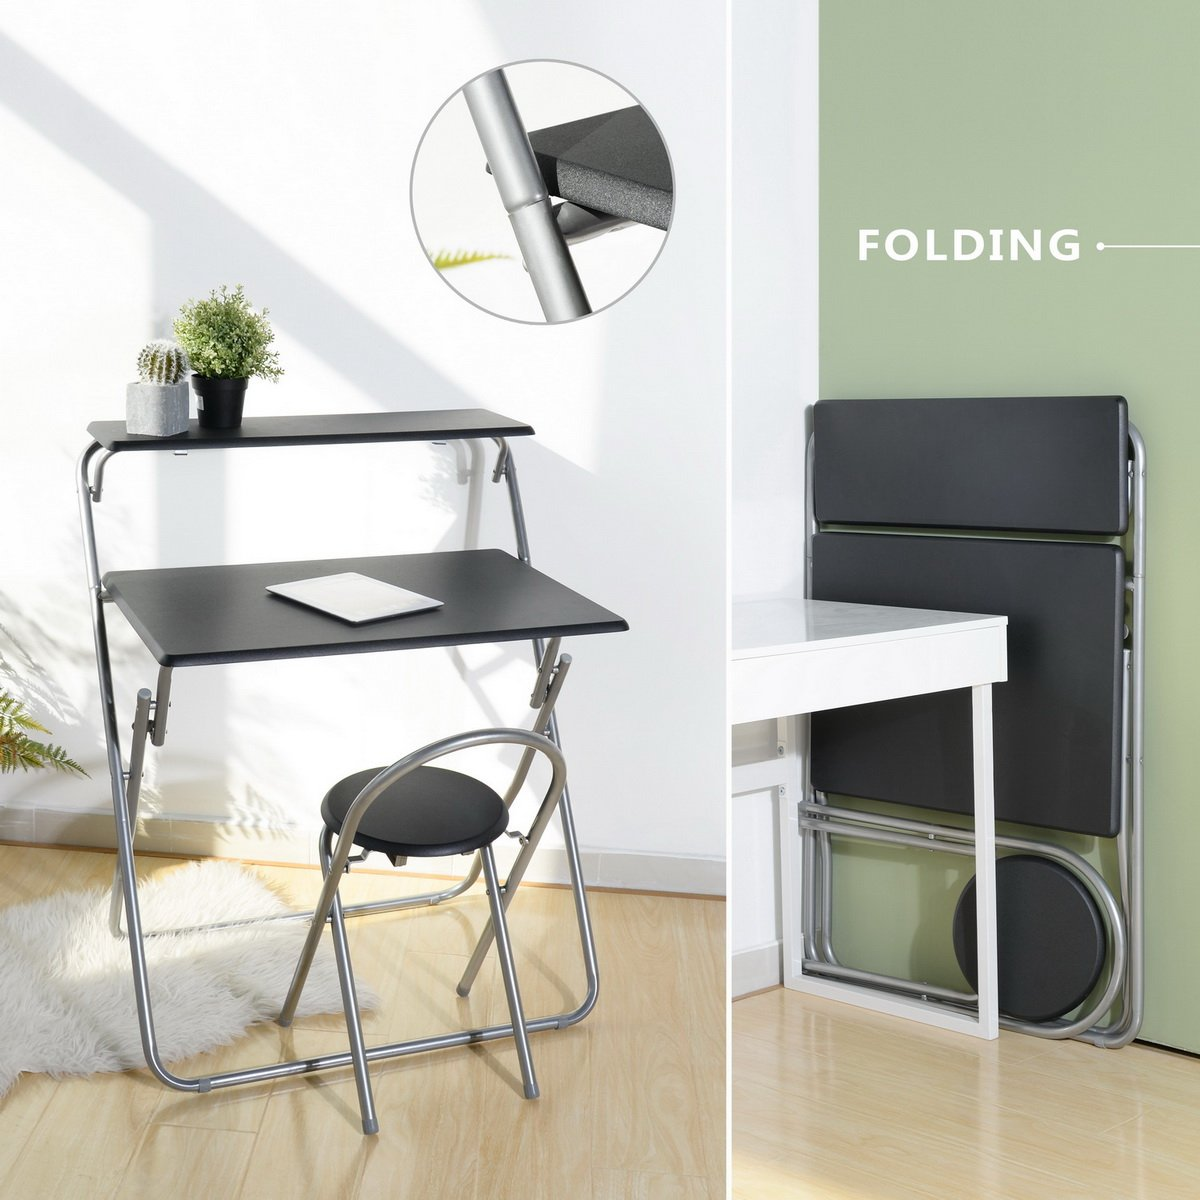 Aingoo Folding Computer Desk and Chair Set for Teens Student, Home ...